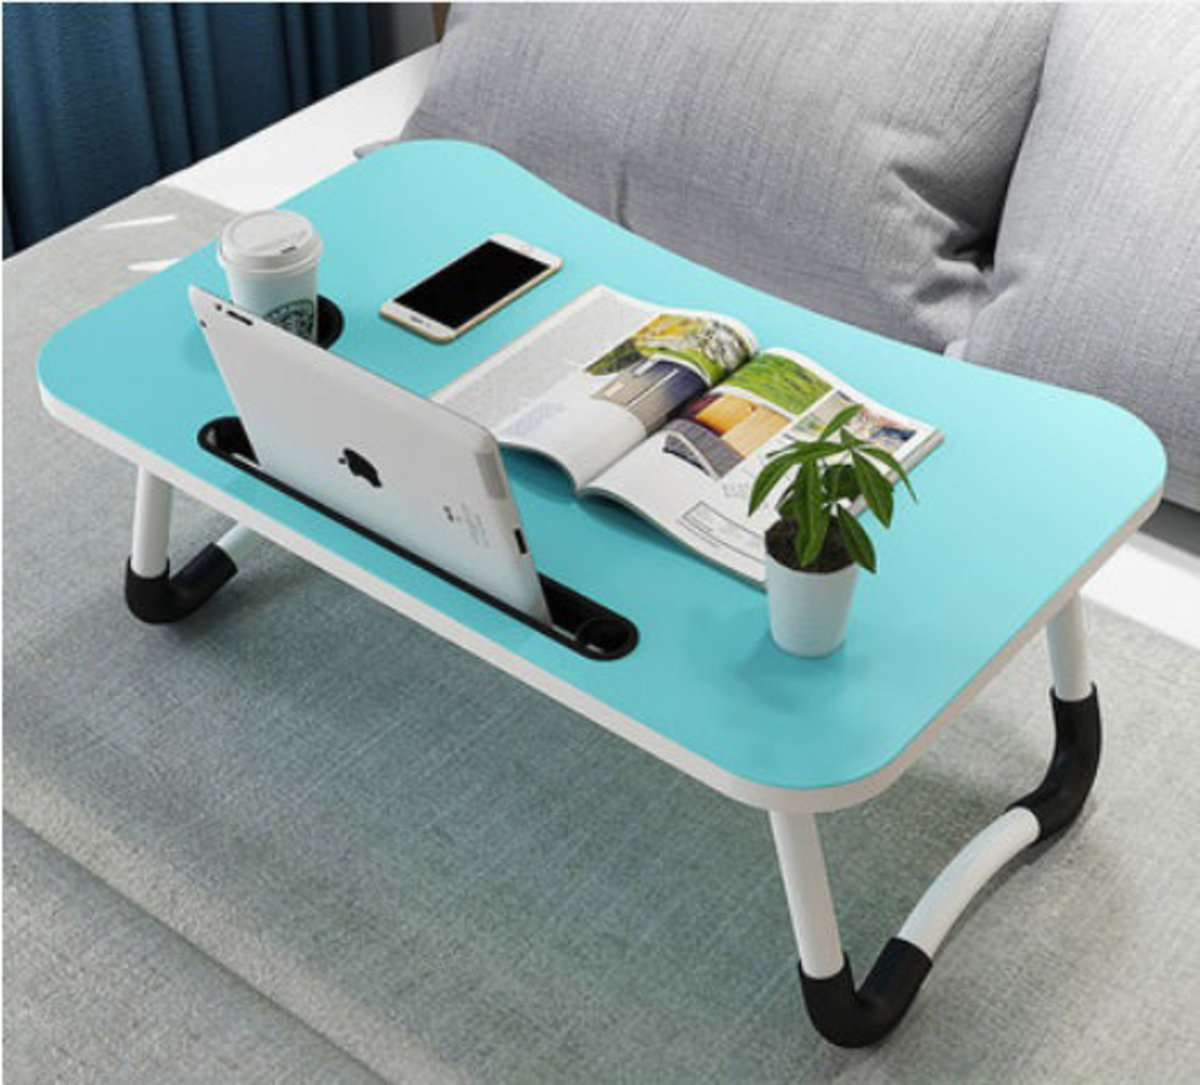 Mobile folding card slot computer table coffee table (With cup holder)- Blue (B2525)